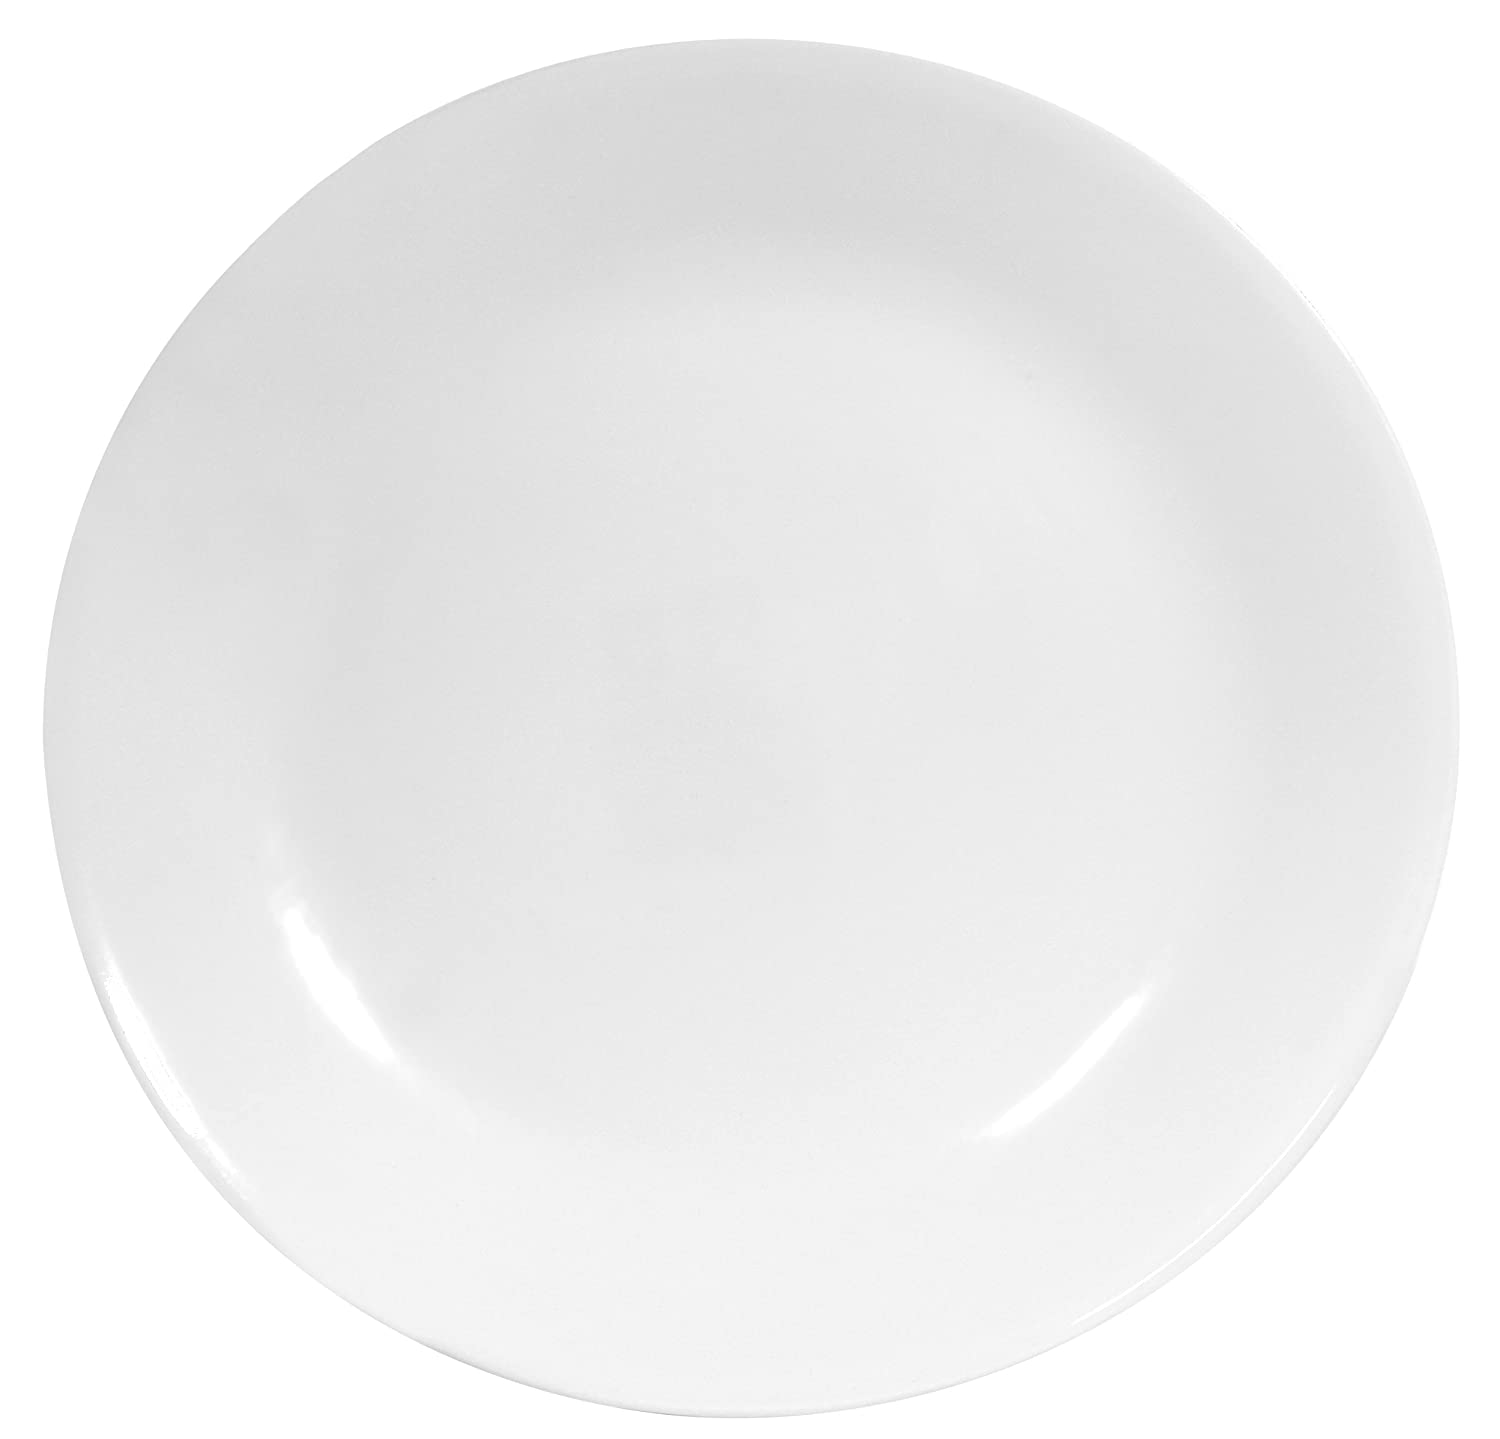 Corelle Livingware 6-Piece Dinner Plate Set, Winter Frost White